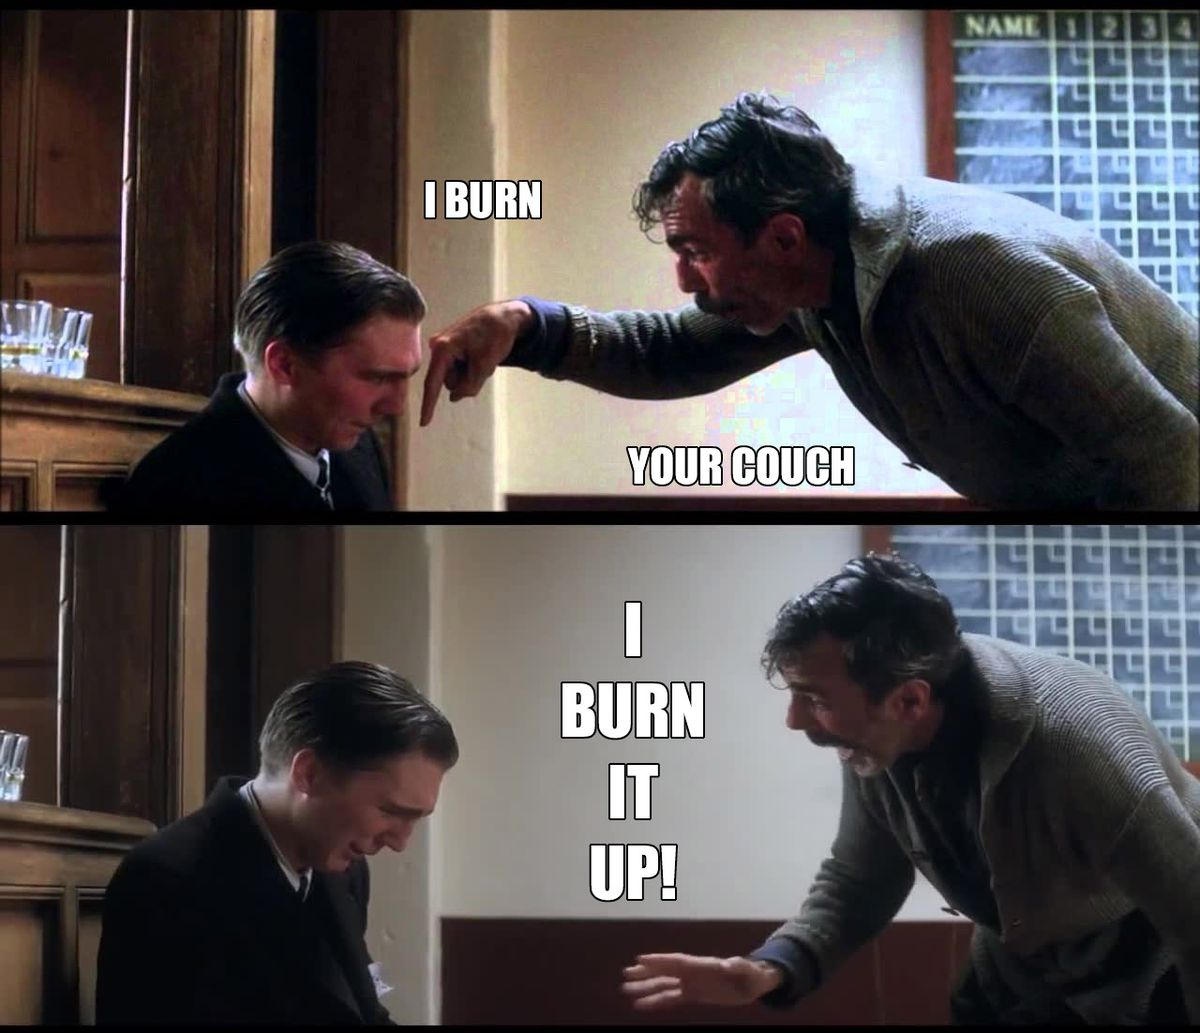 I burn your couch. I burn it up!